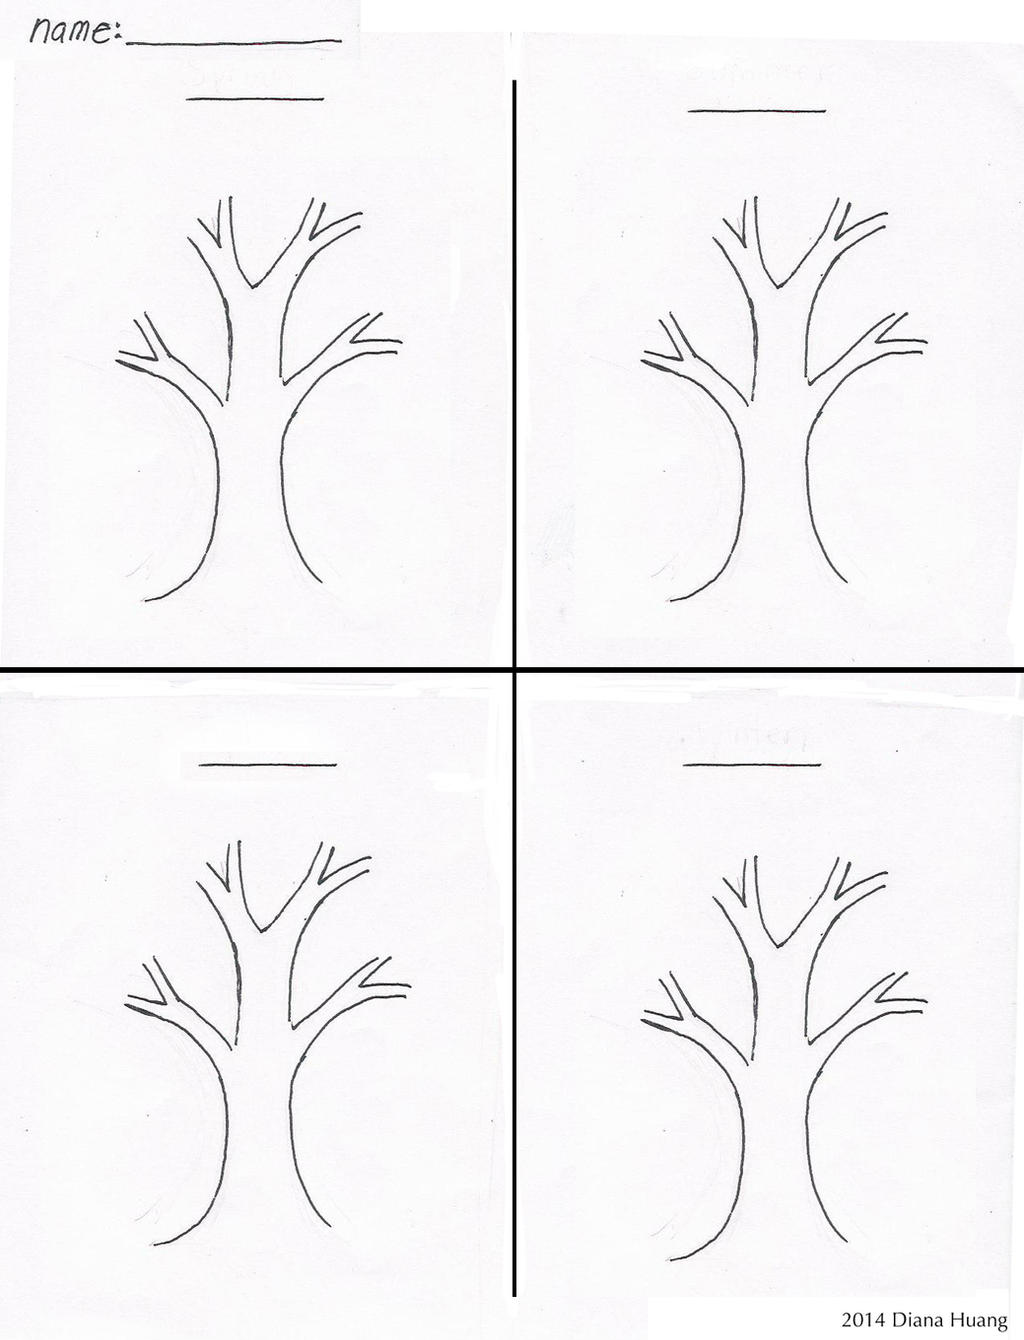 worksheet Seasons Worksheet four seasons tree drawing template worksheet by diana huang on huang